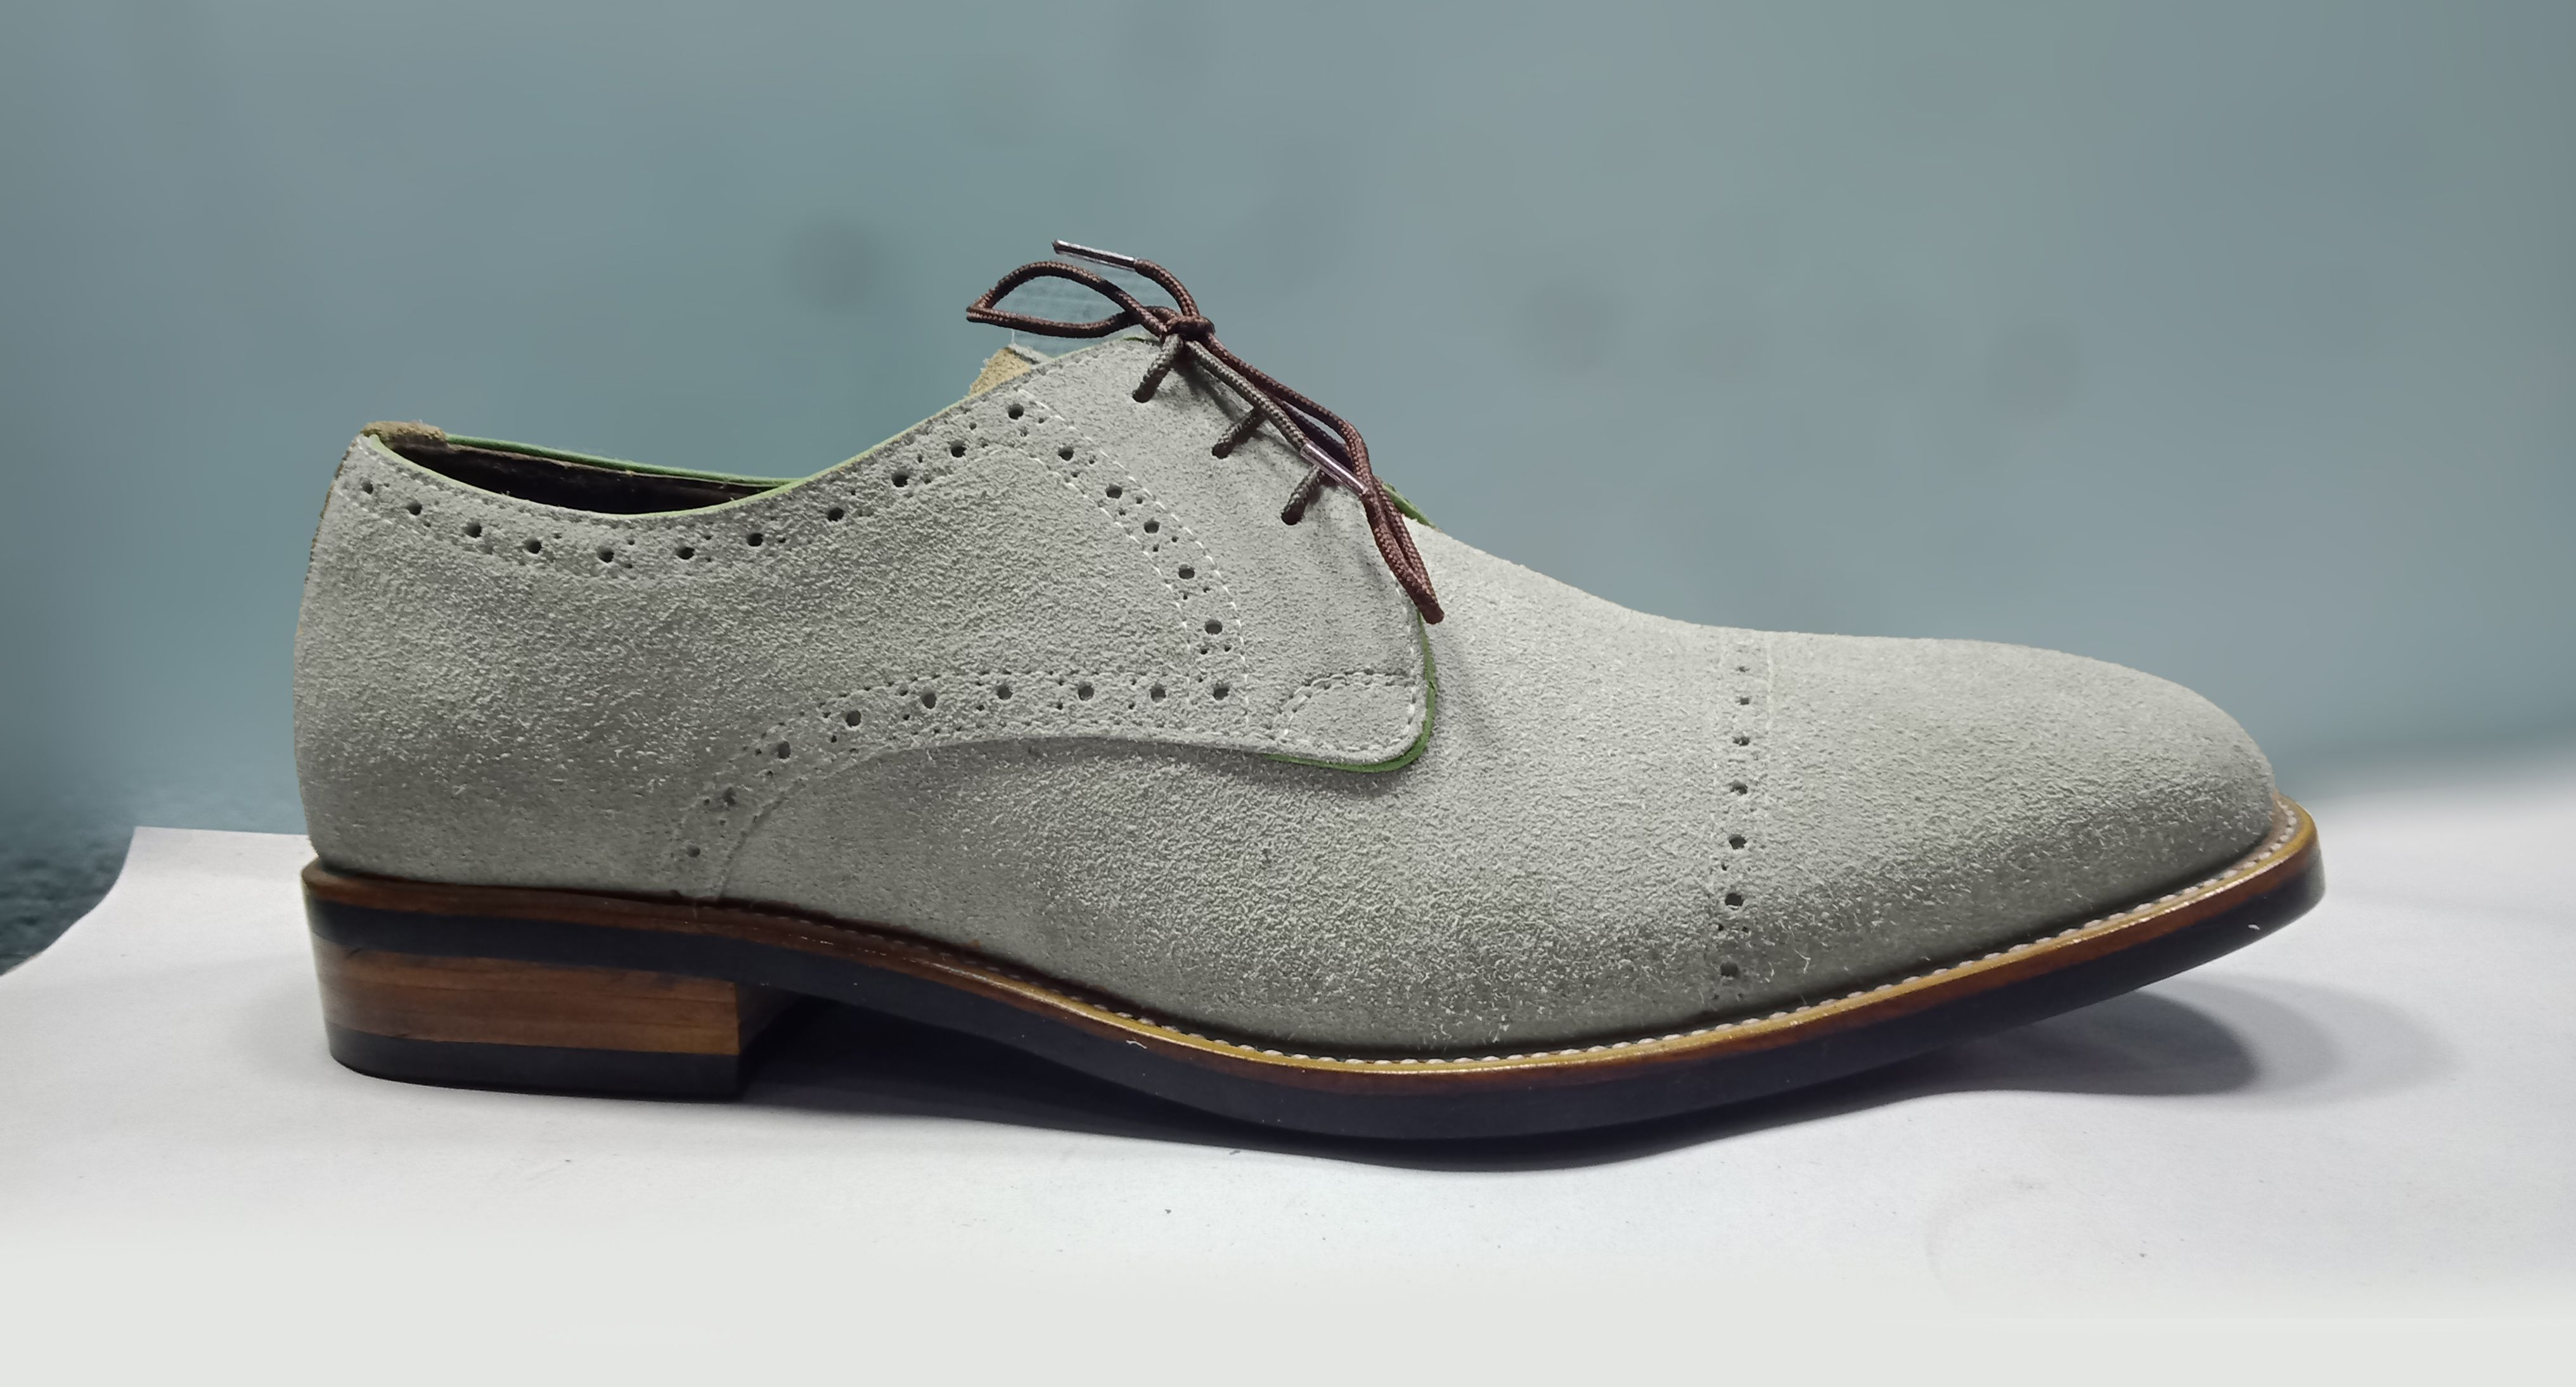 Handmade Gray Suede Cap Toe Lace Up Shoes Suede Caps Lace Up Shoes Fashion Shoes